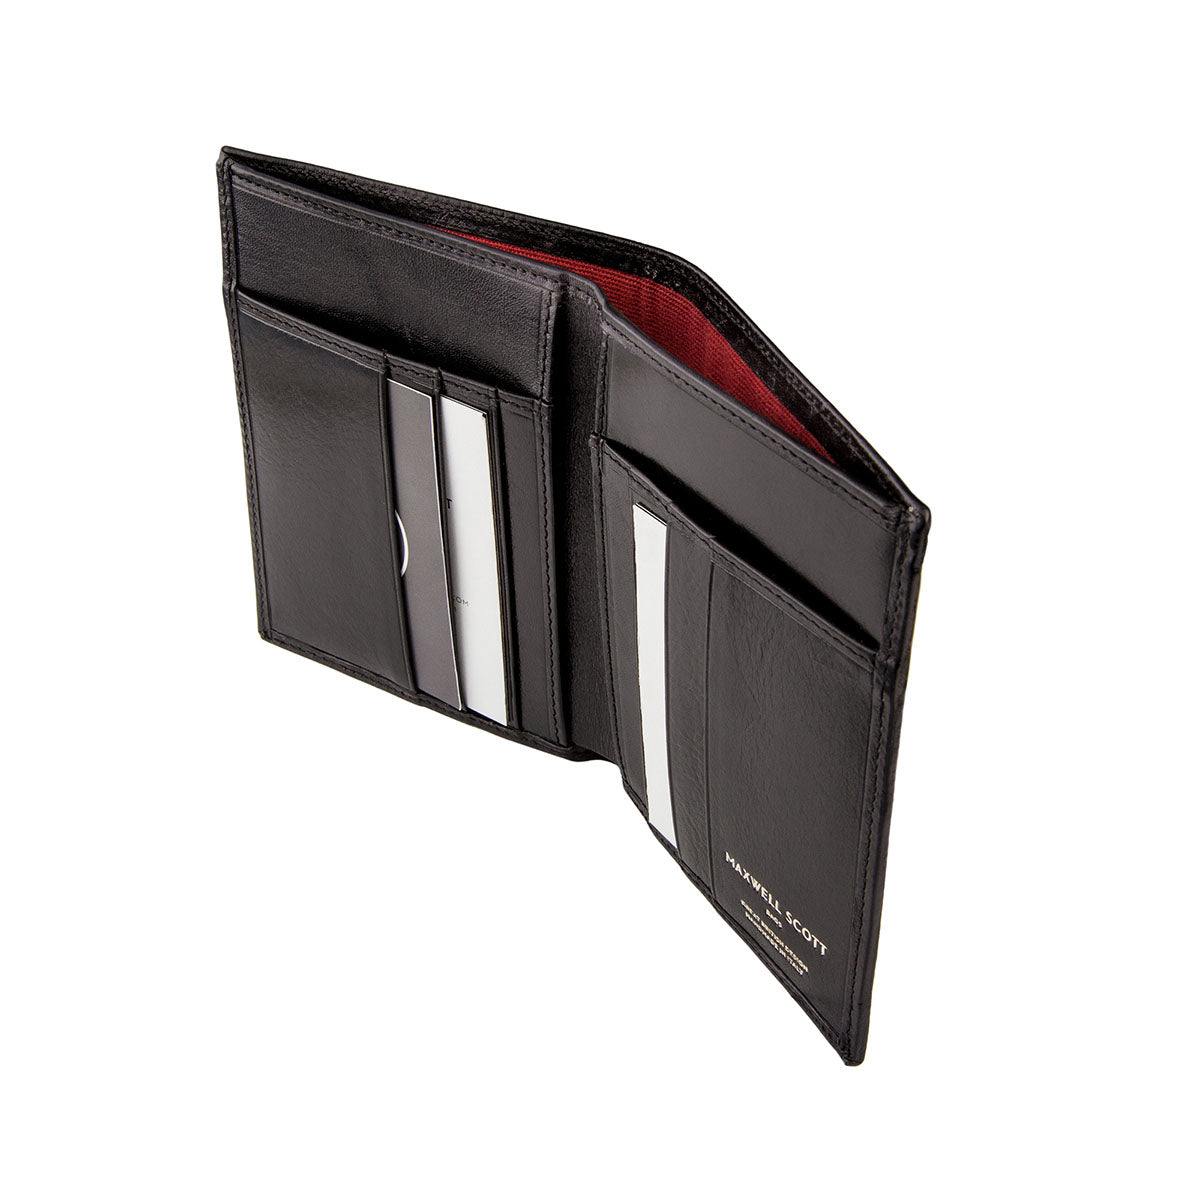 Image 4 of the Black Leather Billfold Card Wallet